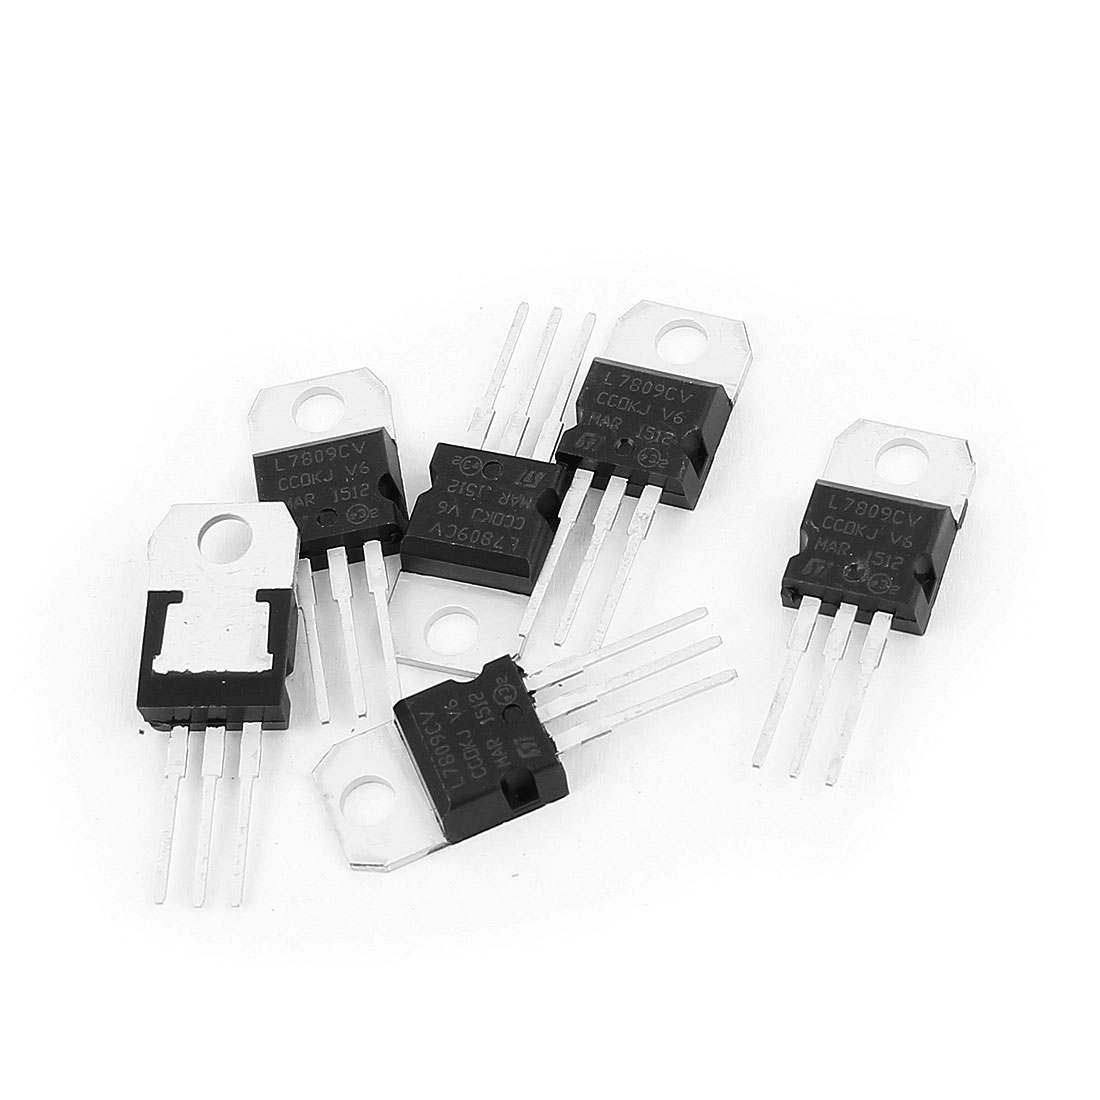 6 Pcs 9V 1A 3 Pin Terminals L7809CV Positive Voltage Regulator TO-220